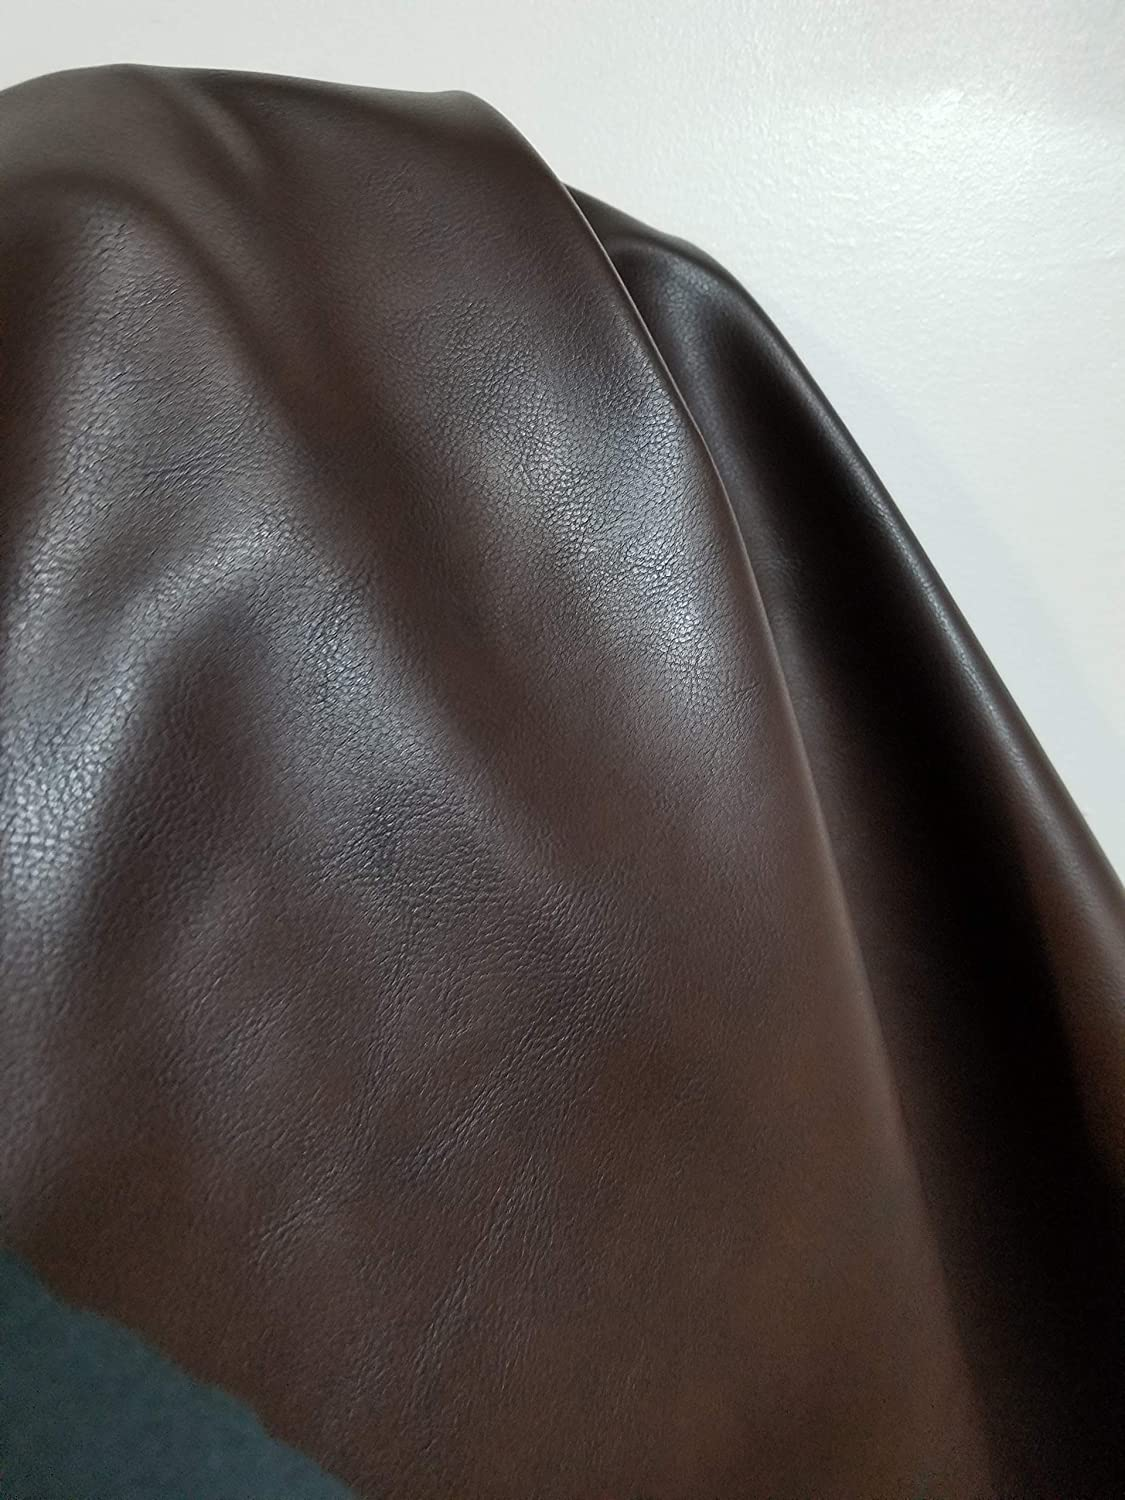 Brown Brown Soft Faux Leather by The Yard Synthetic Pleather 0.9 mm Snooth Vegan Madison 1 Yard 52 inch Wide x 36 inch Long Soft Smooth Vinyl Upholstery